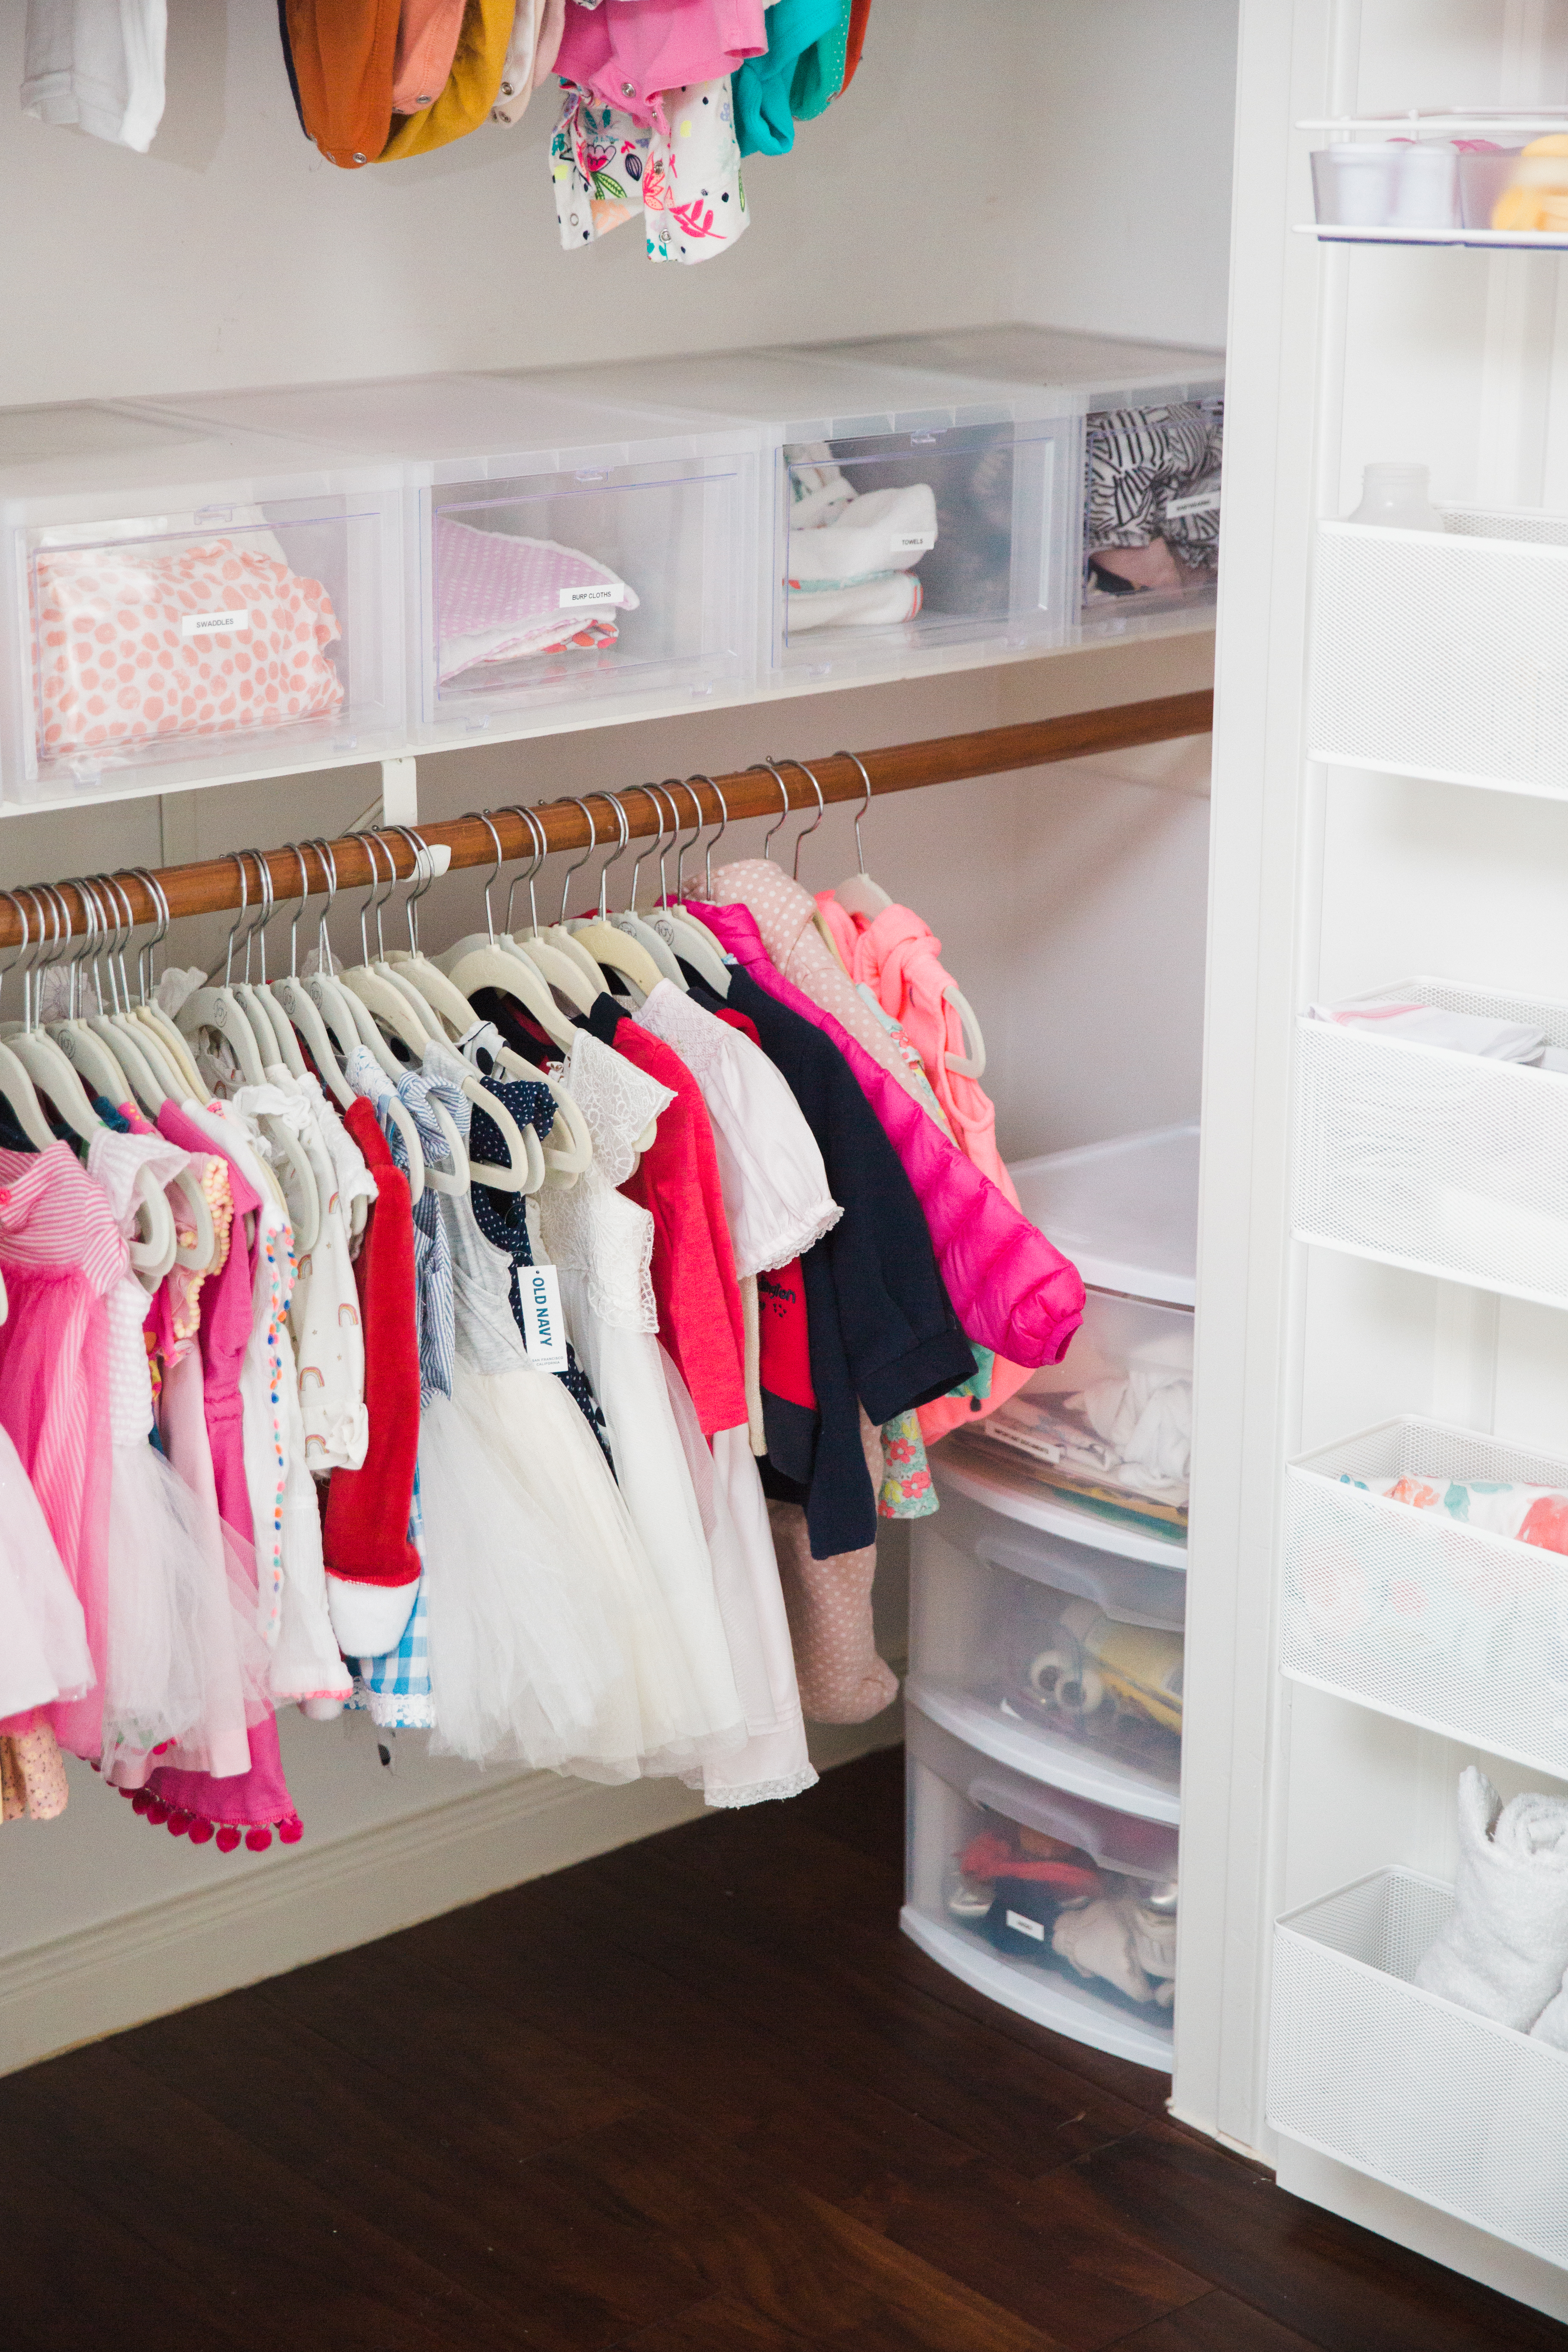 Emi S Closet Organization Snapshots My Thoughts A